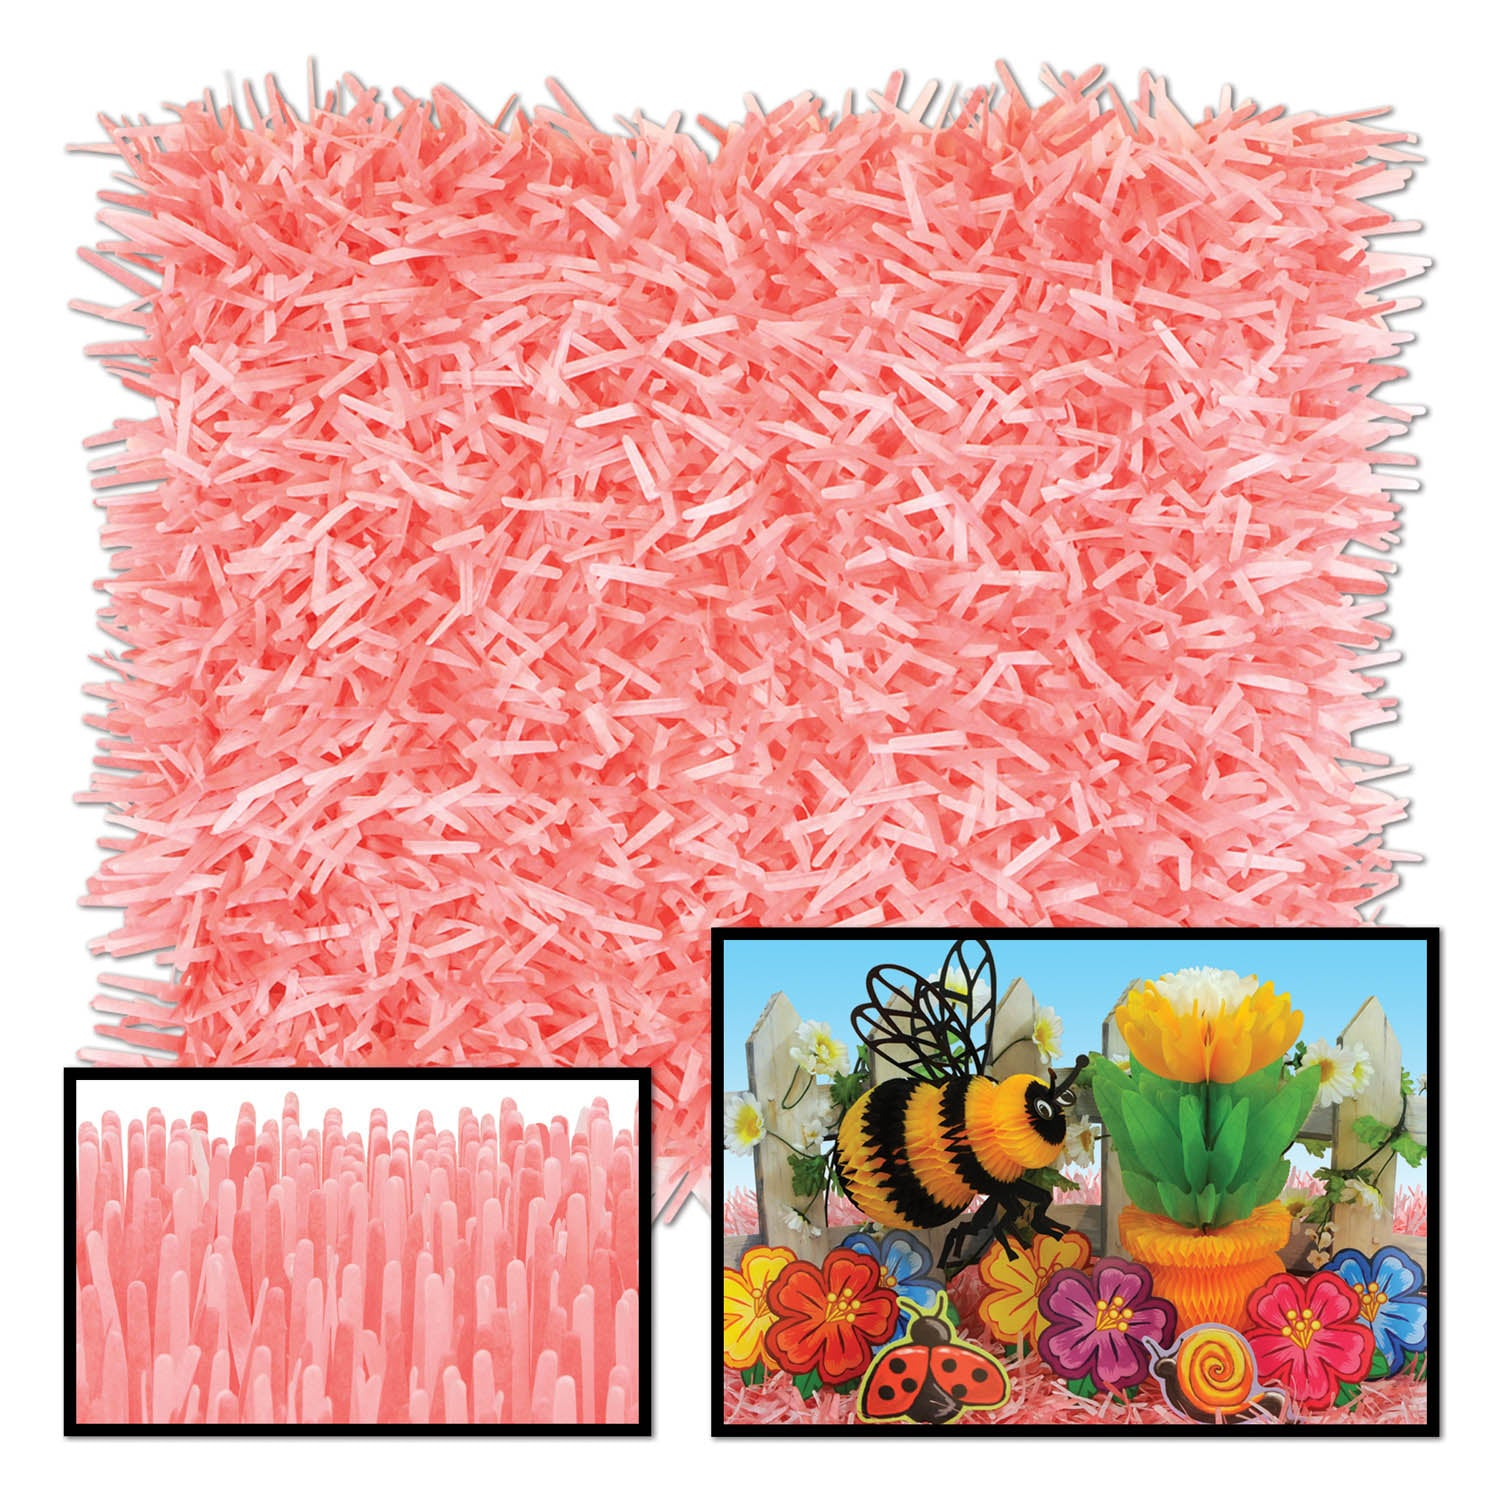 Packaged Fringed Tissue Mats (2/Pkg), dusty rose & pink by Beistle - Spring/Summer Theme Decorations